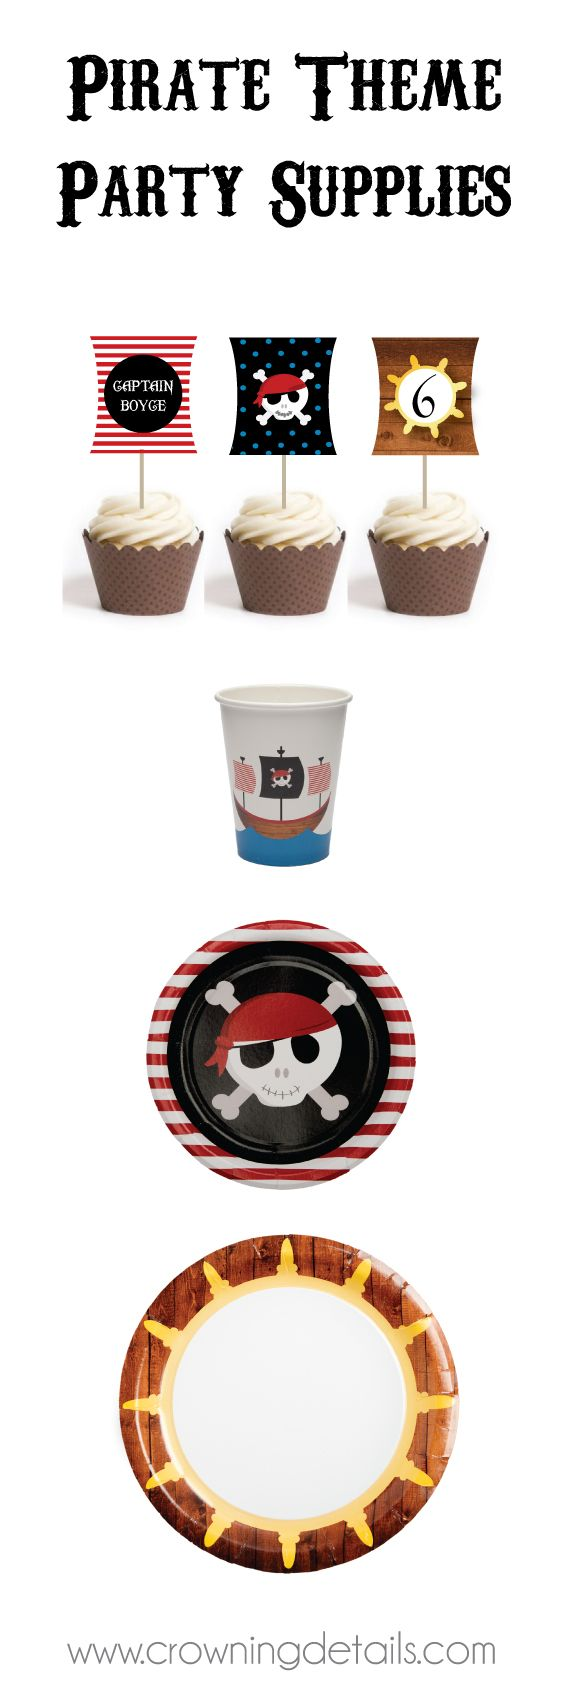 Printable pirate party decorations amp supplies free templates - Pirate Party Supplies For Your Pirate Birthday Party Shop The Entire Collection In Our Online